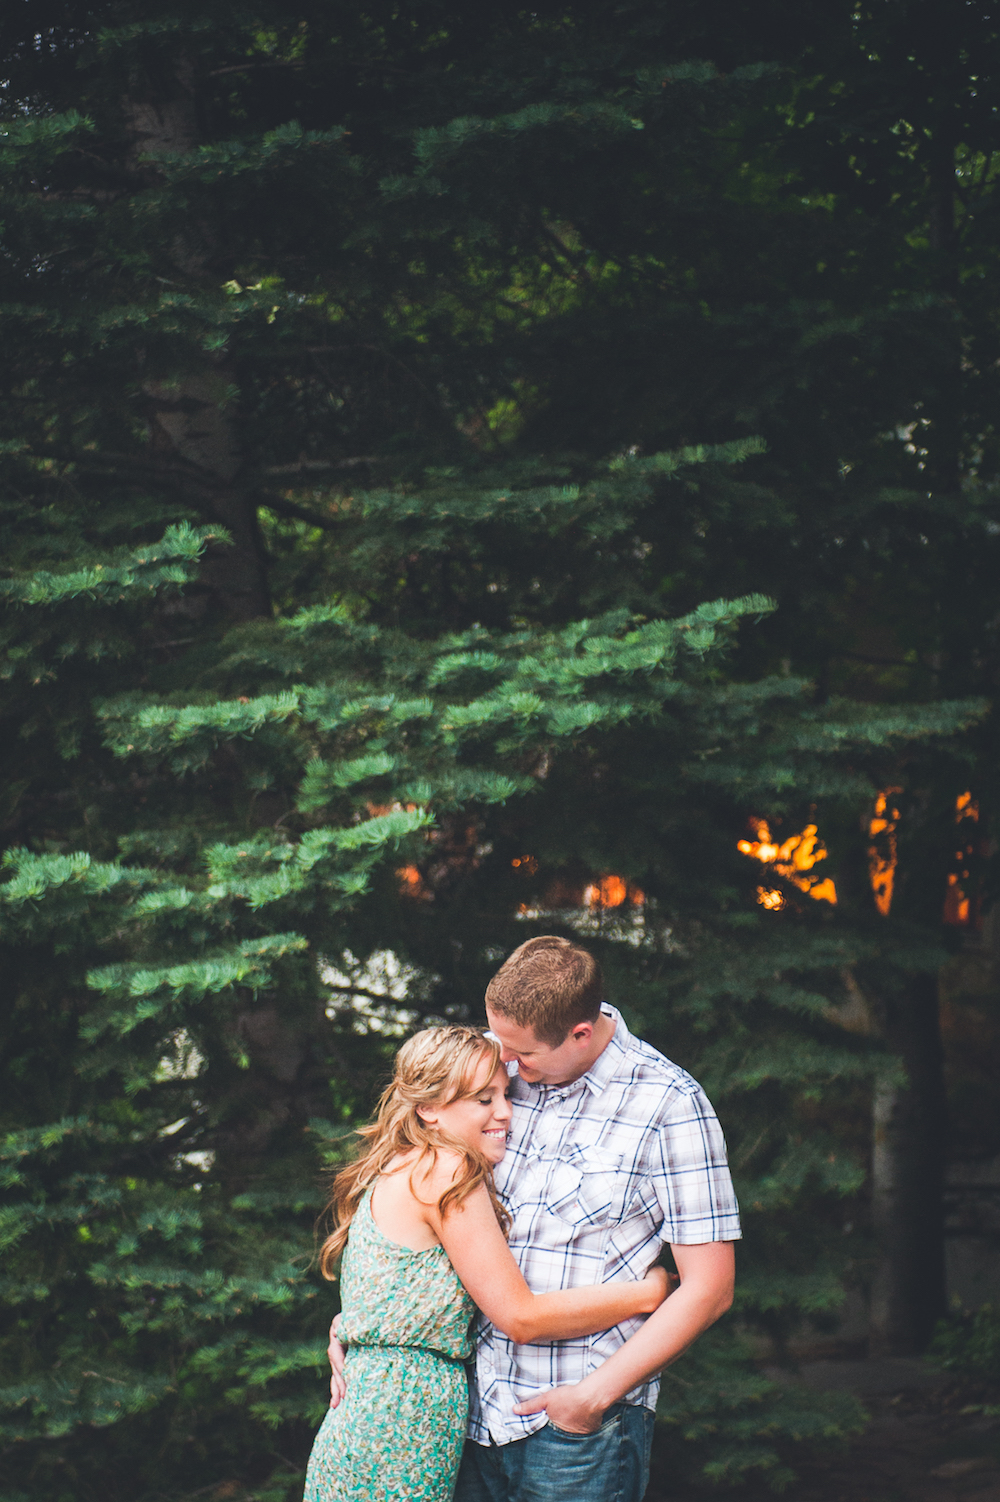 ck-Colorado-Engagement-Photography-0012.jpg